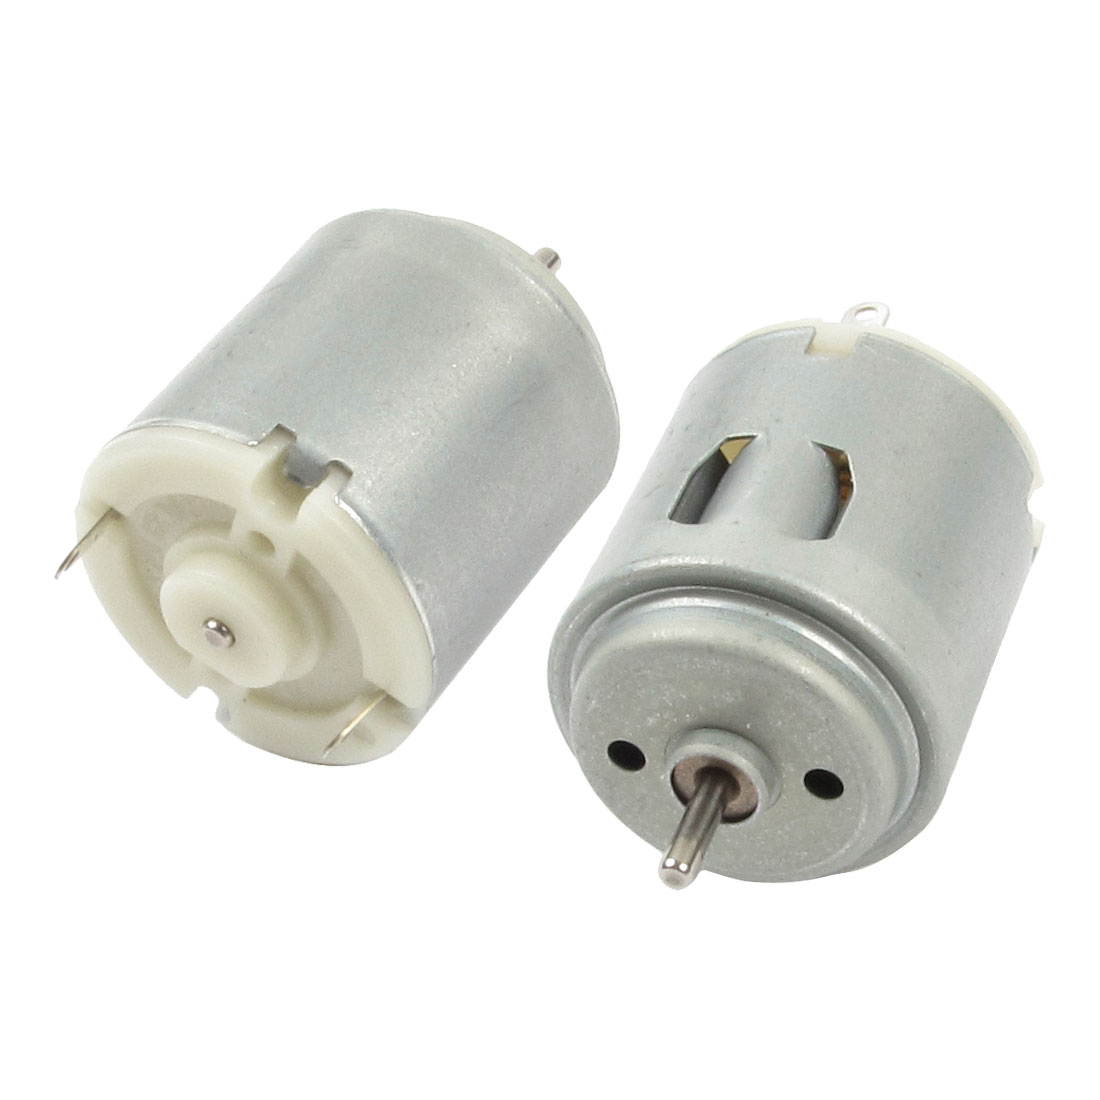 2Pcs-2-36-x-2-7cm-3V-6V-R260-DC-Mini-Motors-for-DIY-Electric-Toys